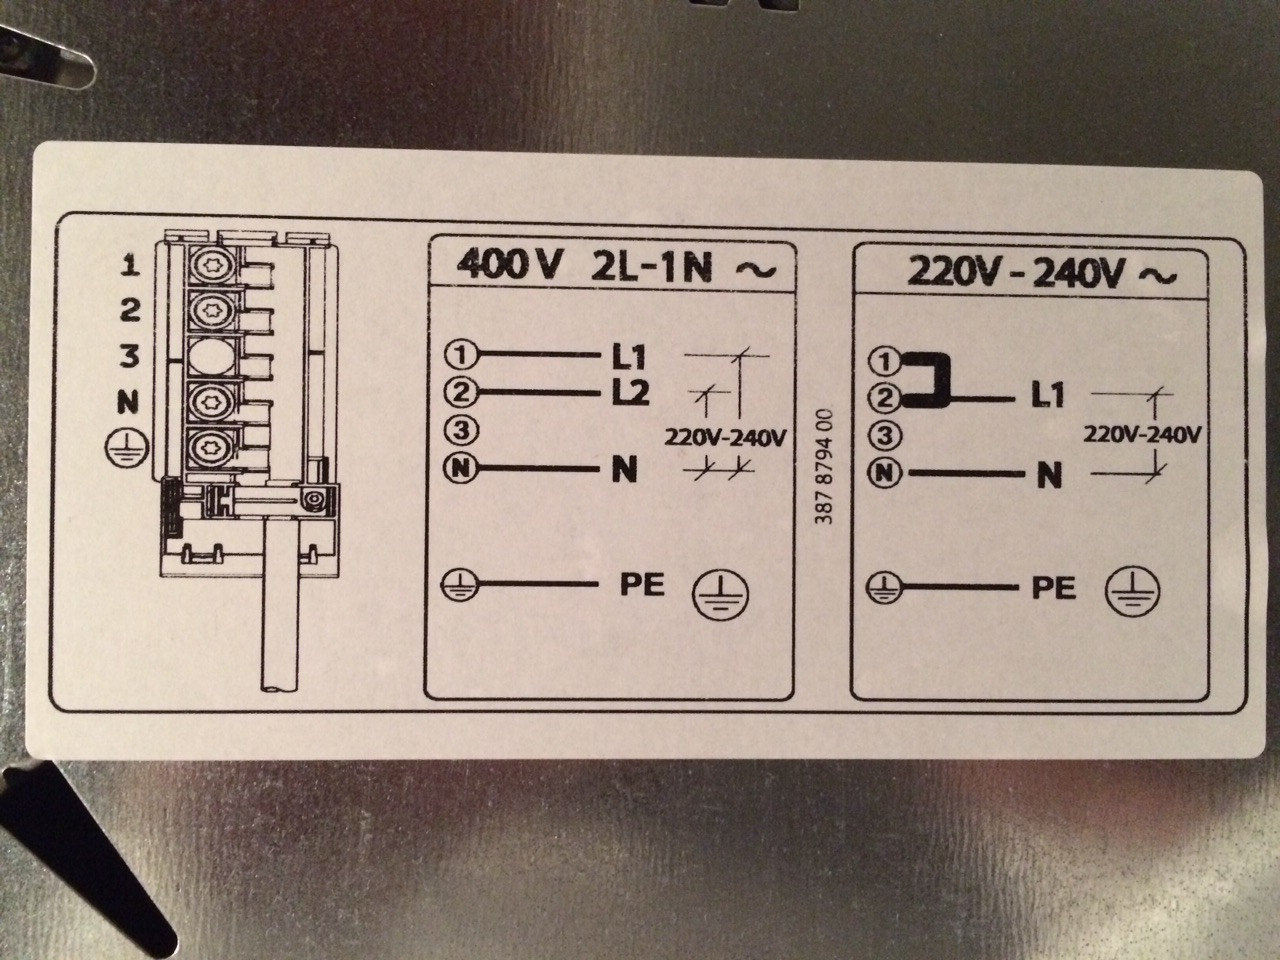 2 wire stove plug wiring diagram 1972 nova harness how to connect my electric ikea cooking plate